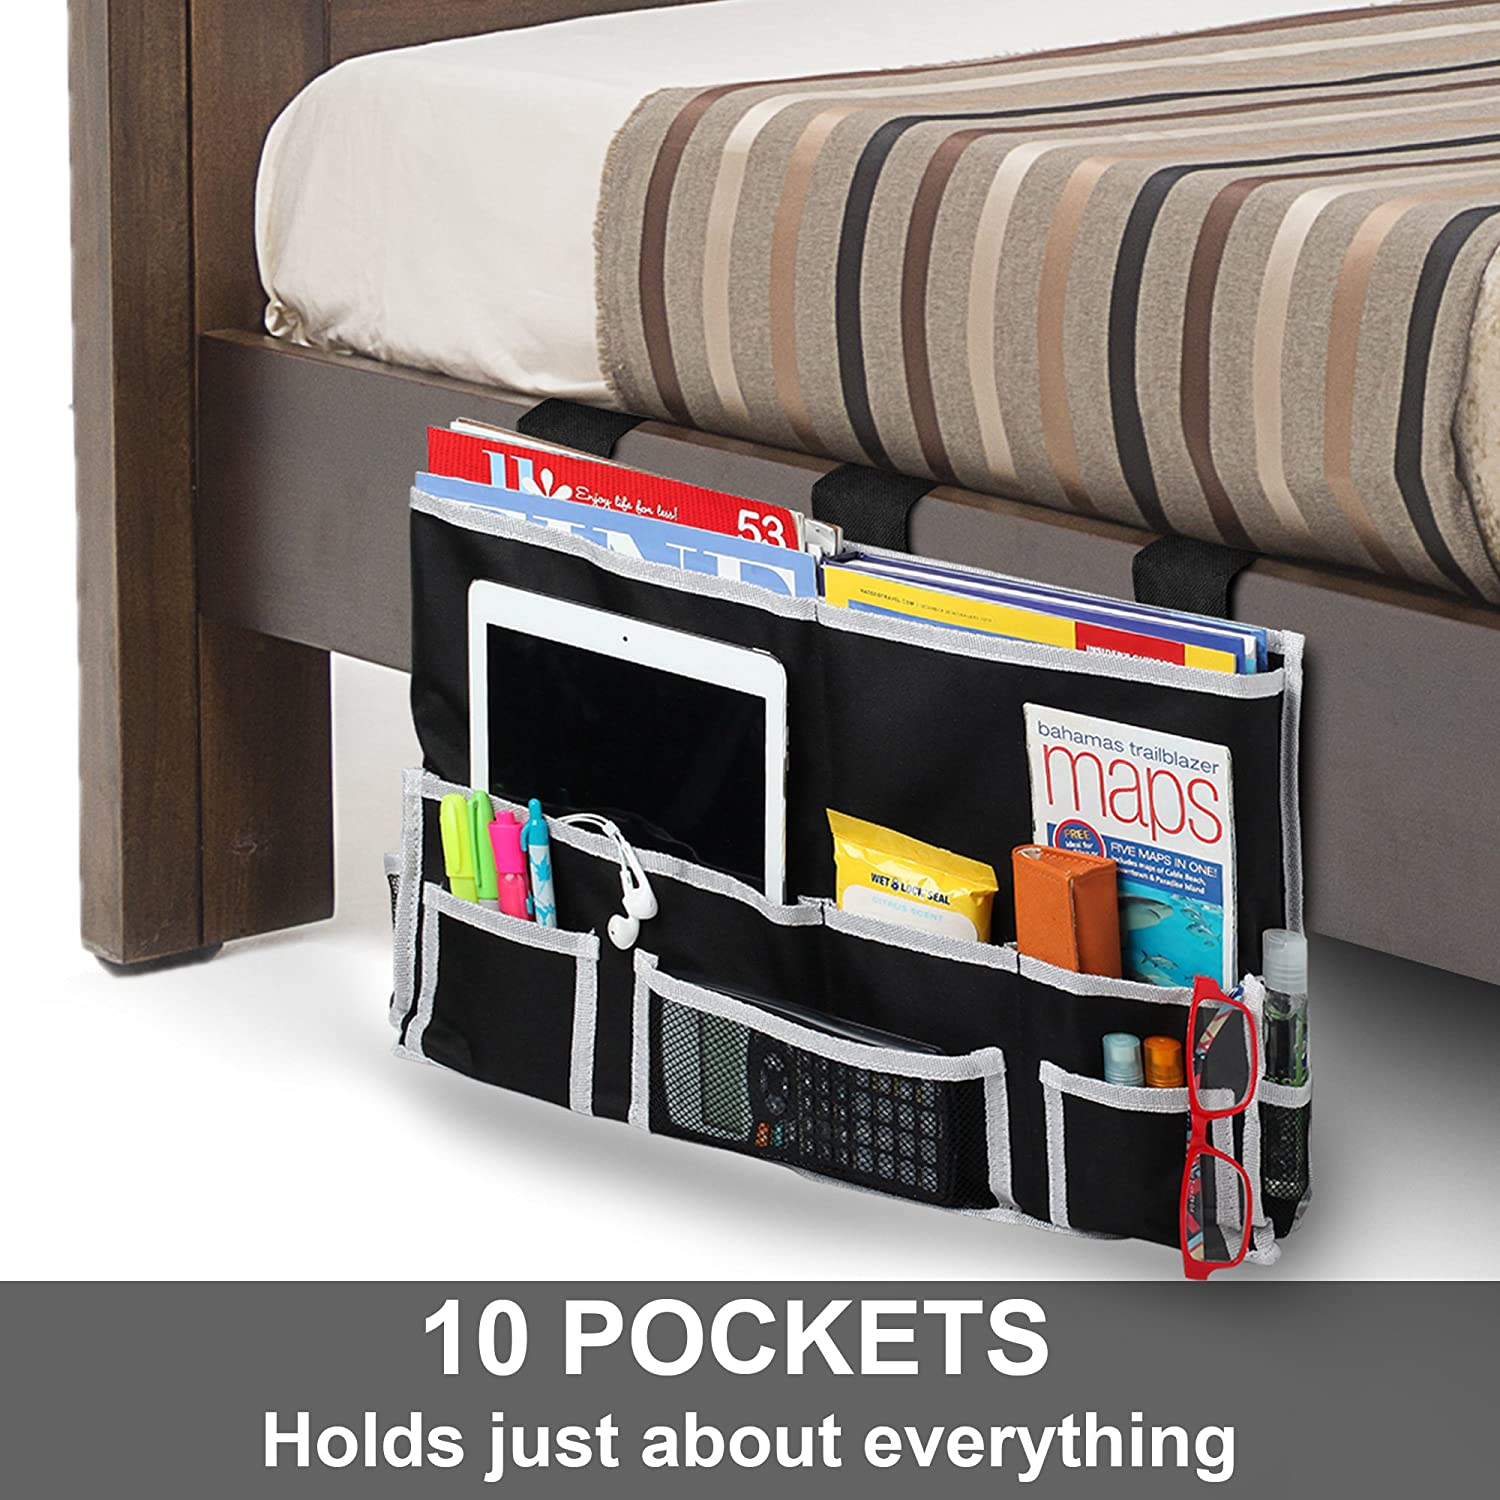 Dorm Room Ideas - If you don't have room for a nightstand, use a bedside caddy to keep your important items close at hand.